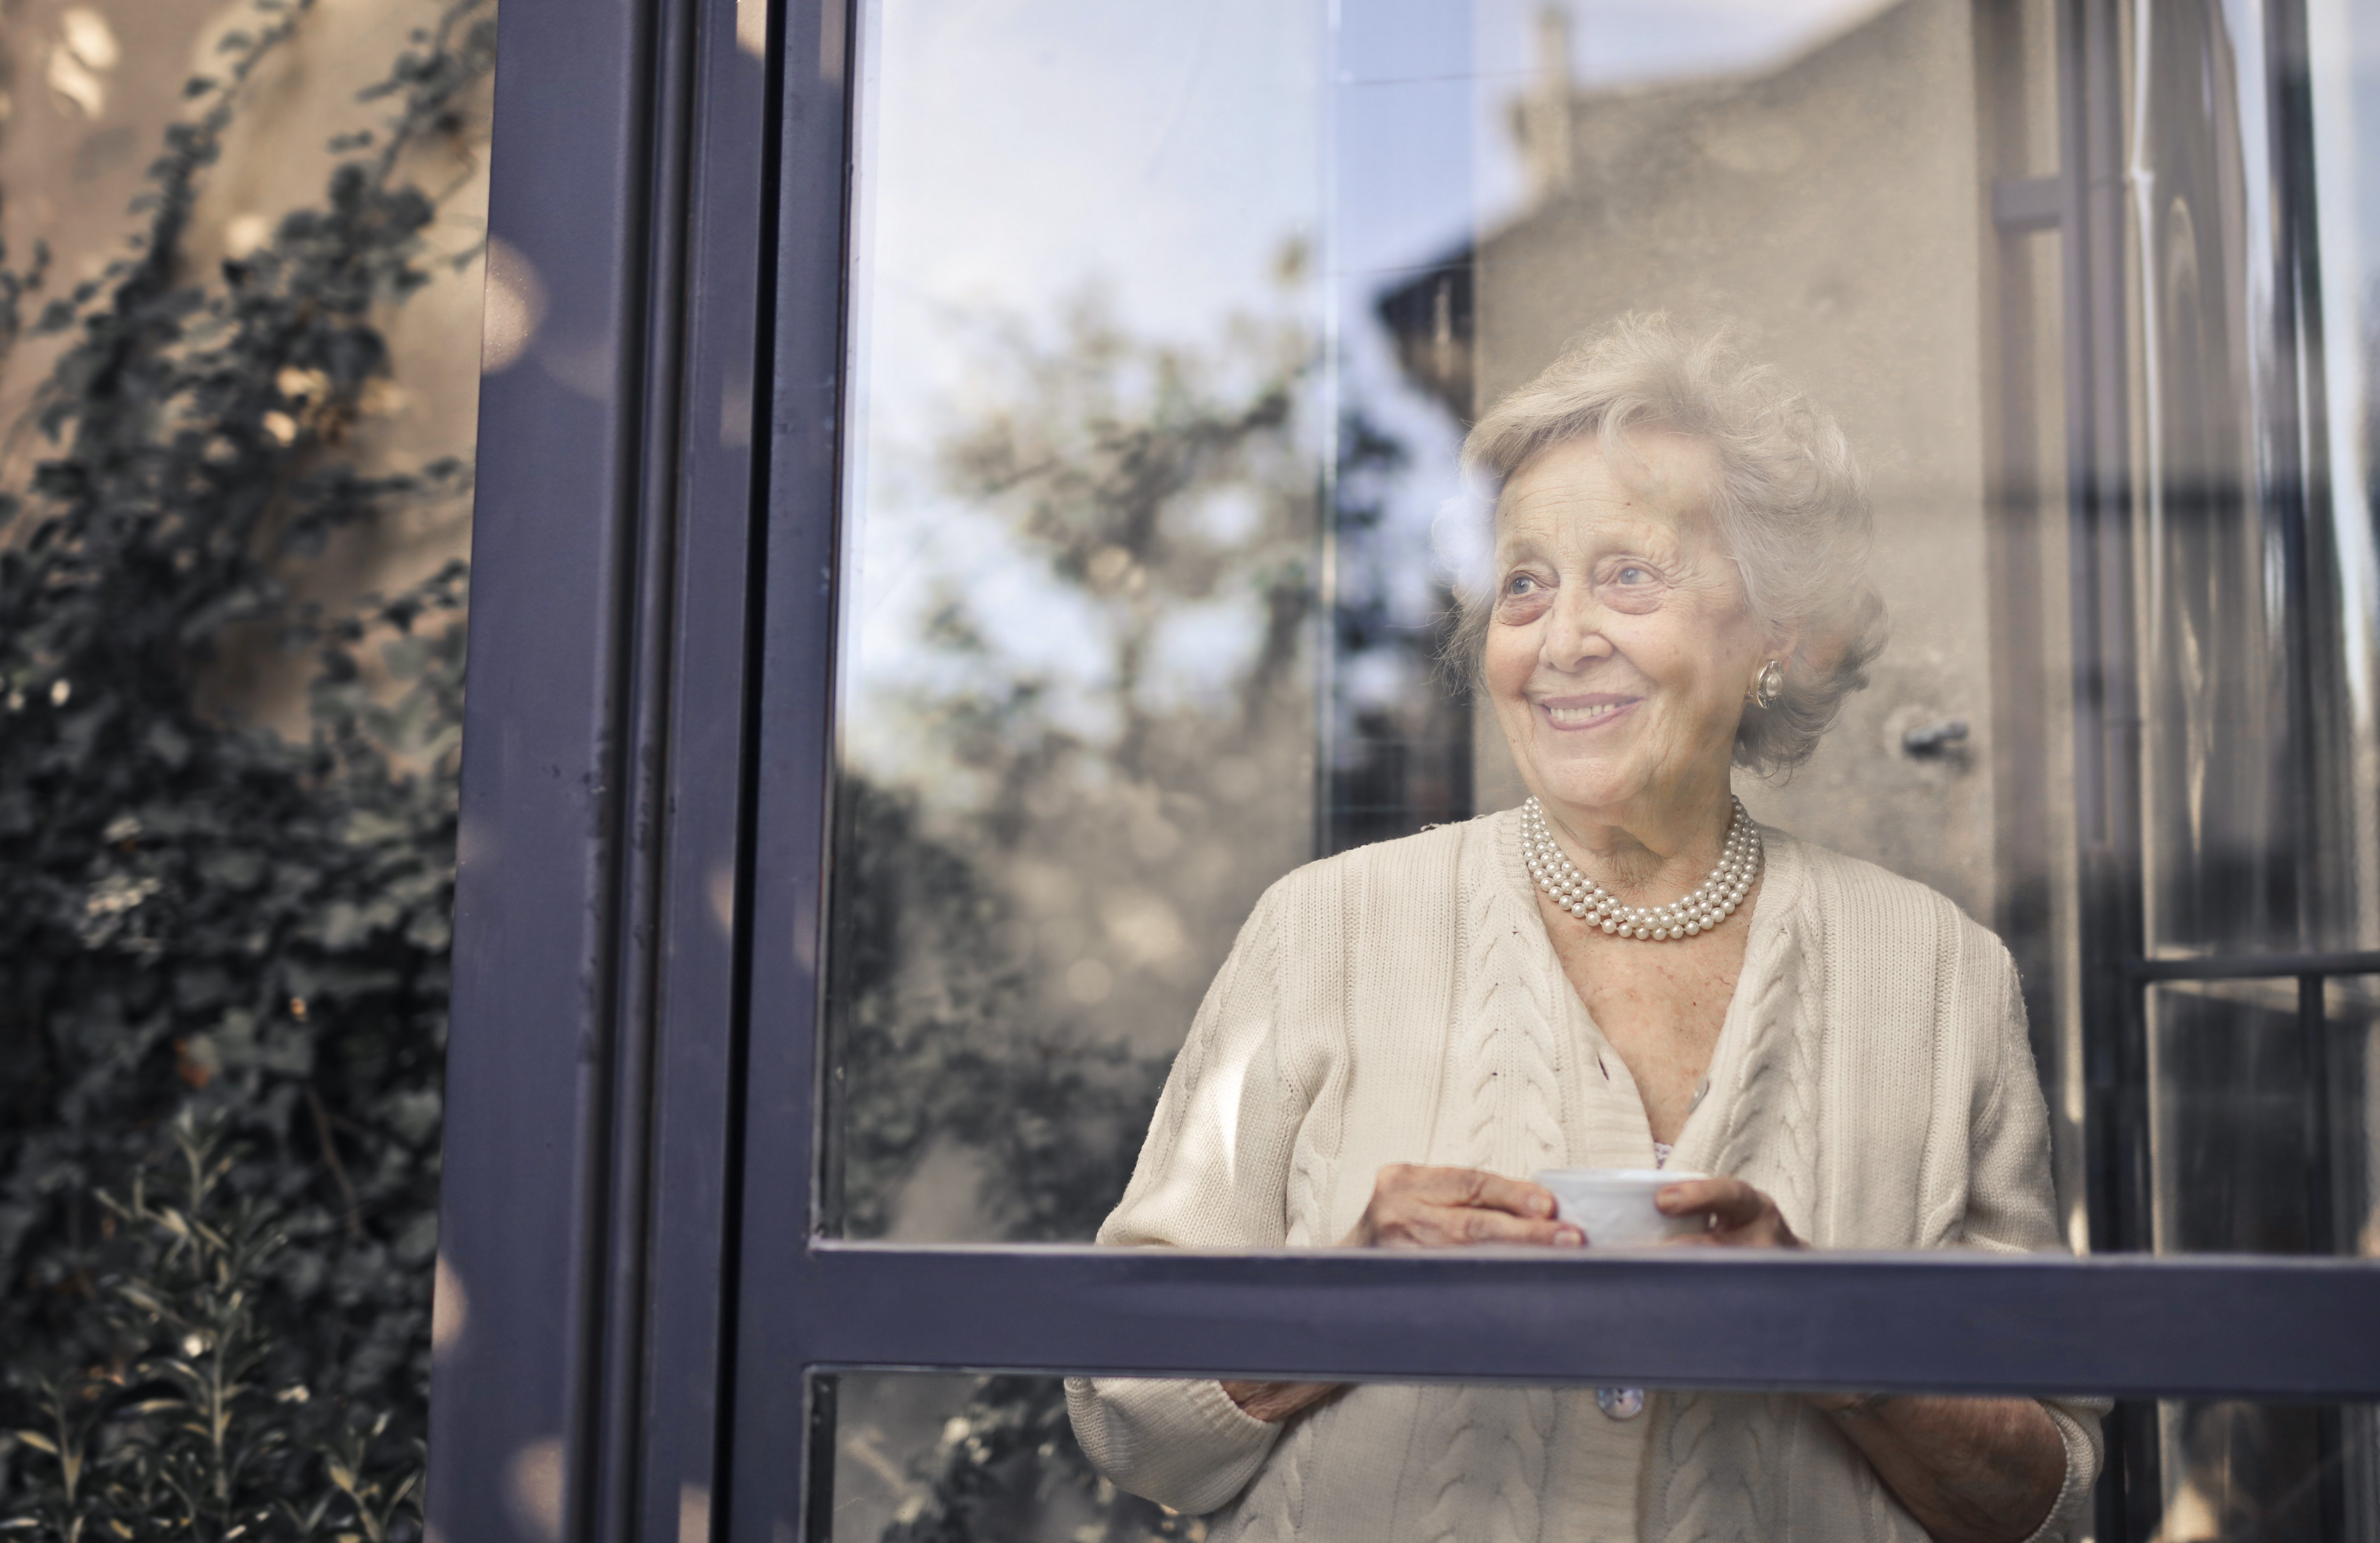 Socially isolated senior during COVID-19 pandemic looking out her window while holding a mug of tea